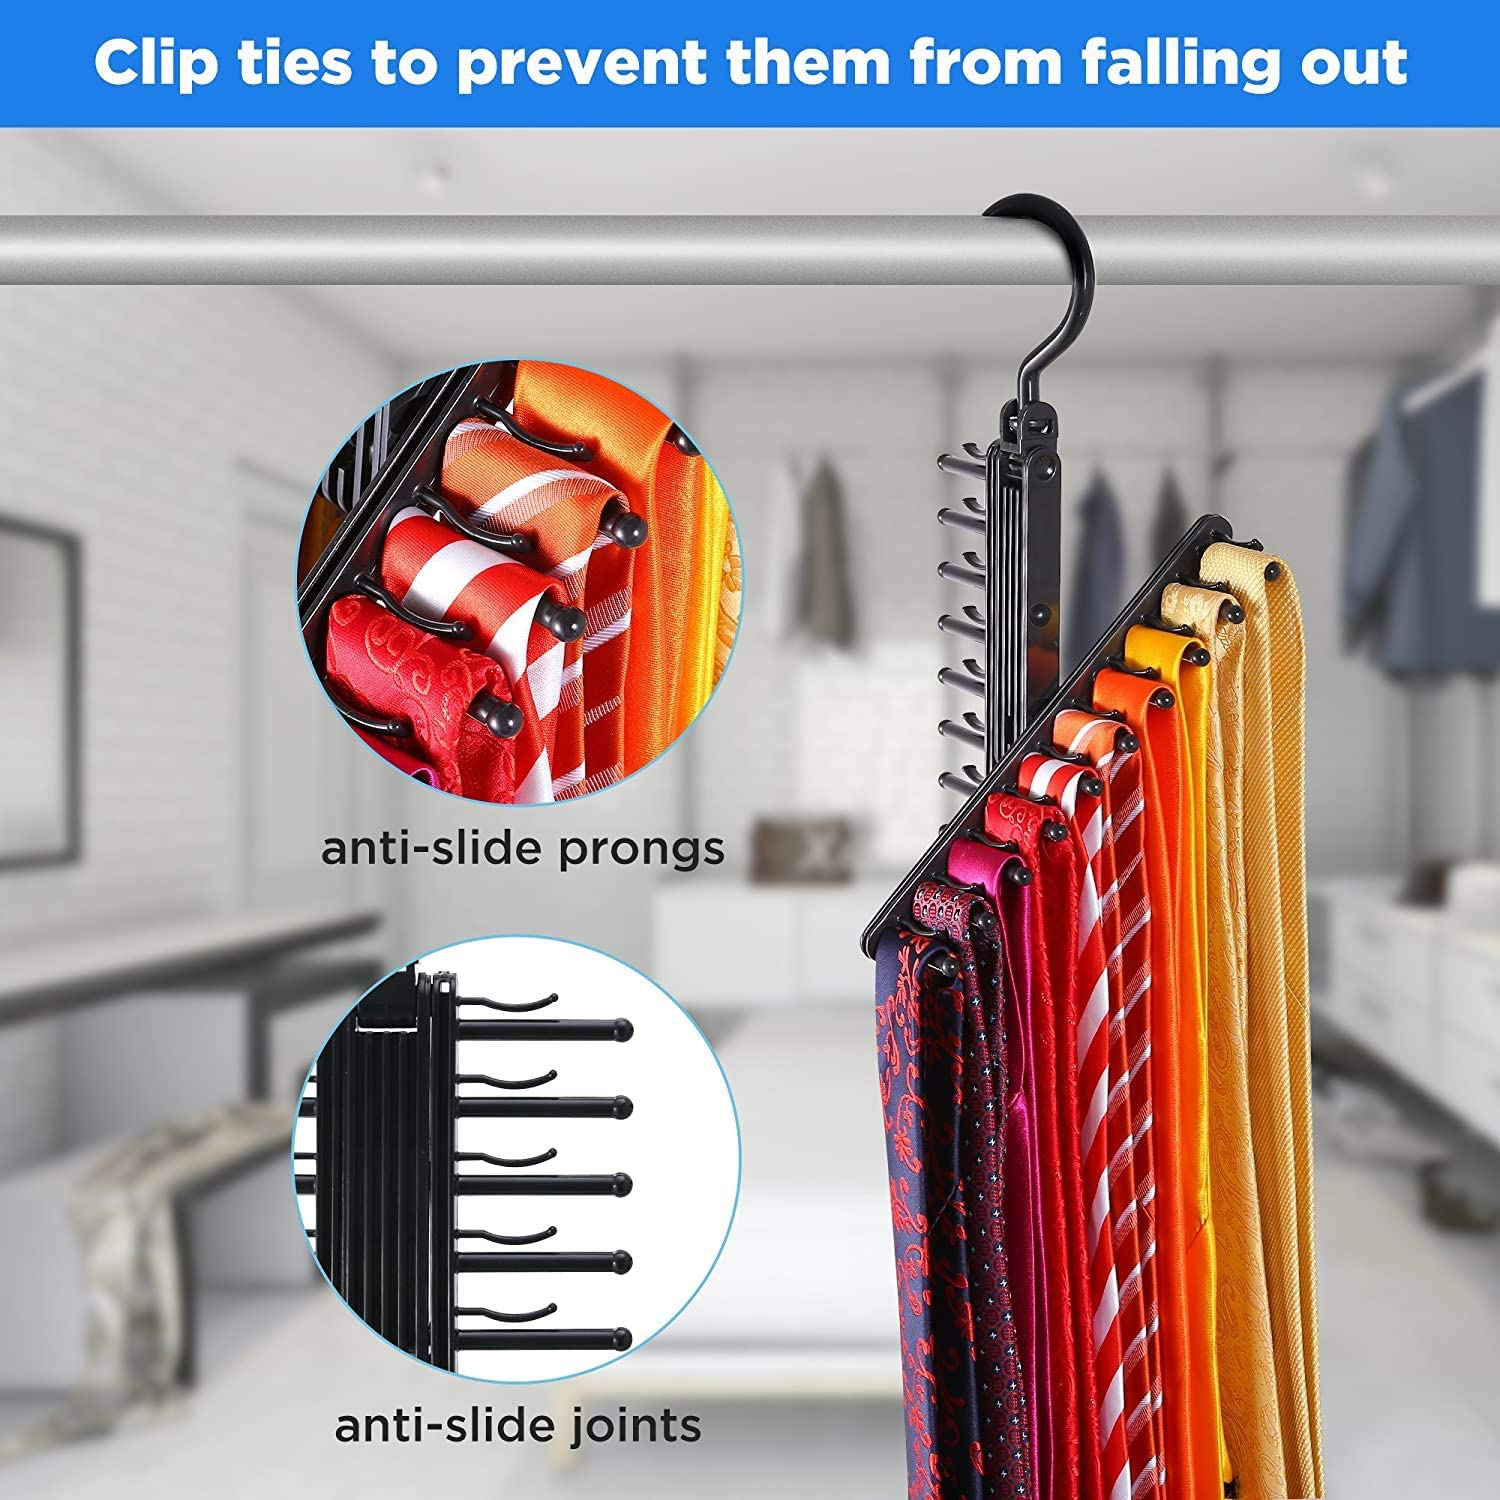 ABEY Cross X Tie Rack for Men 360 Degree Adjustable Belt Scarf Hanger with Non-Slip Clips Swivel Space Saving Organizer Securely Up to 20 Ties